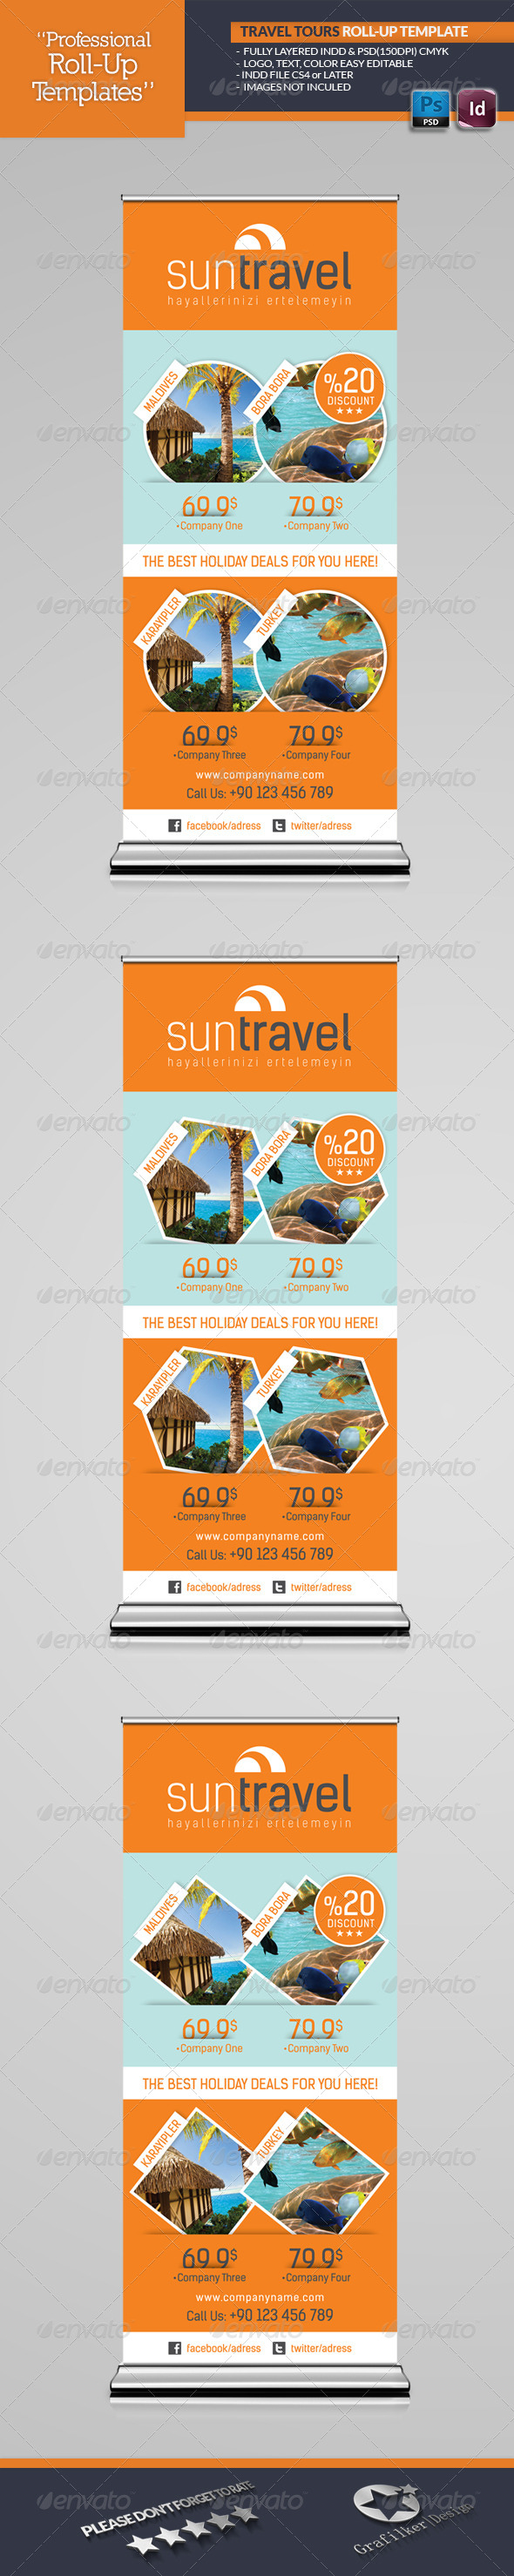 Travel Tours Roll-Up Template - Signage Print Templates